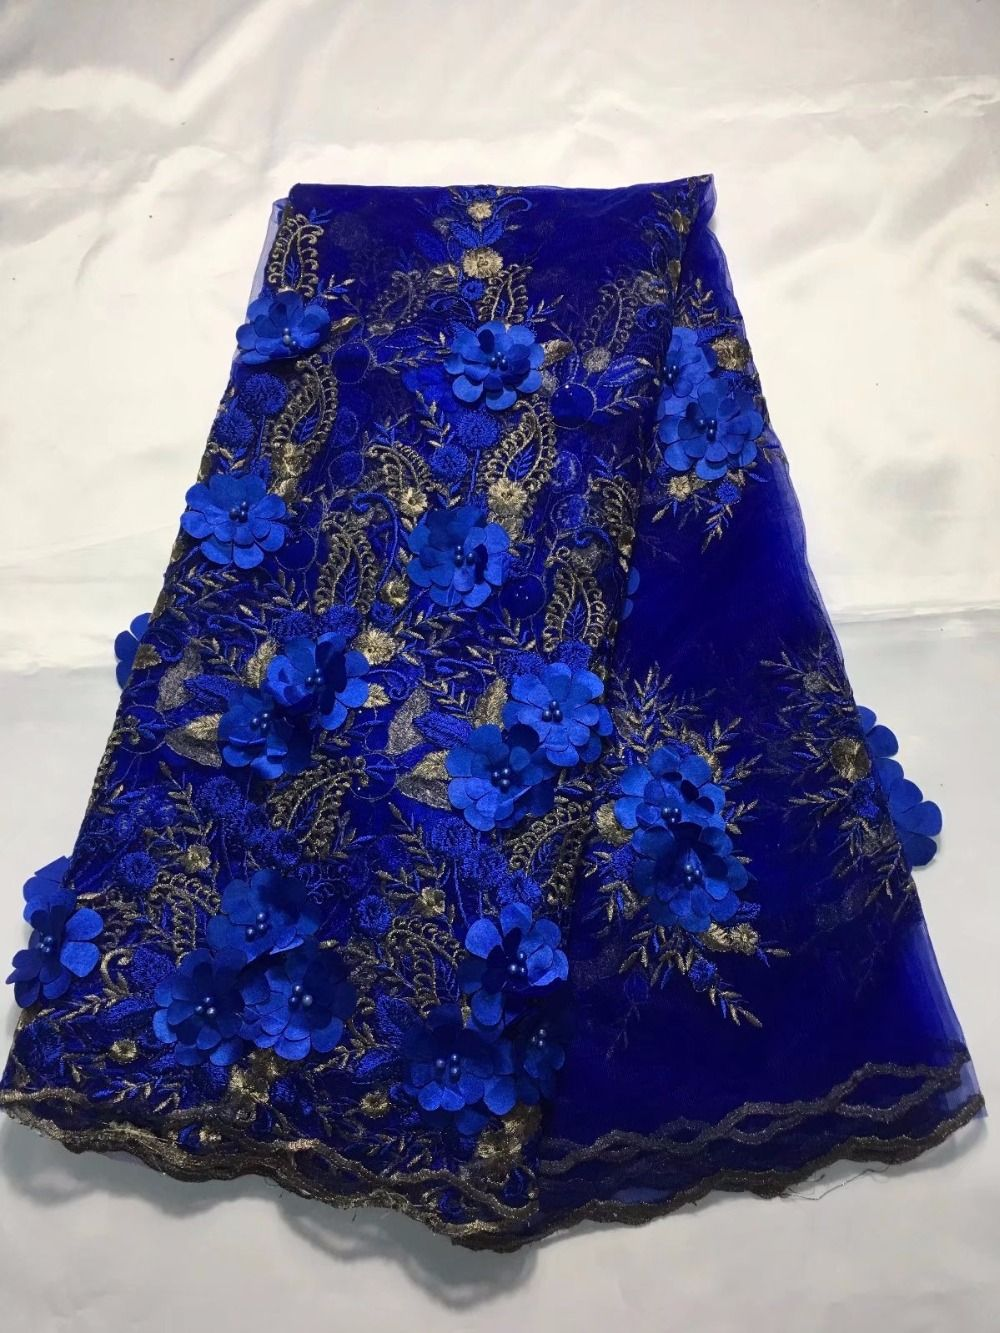 African Lace Fabric 5 Yards Guipure Lace Cotton French Embroidered Mesh Lace Fabric,Royal Blue